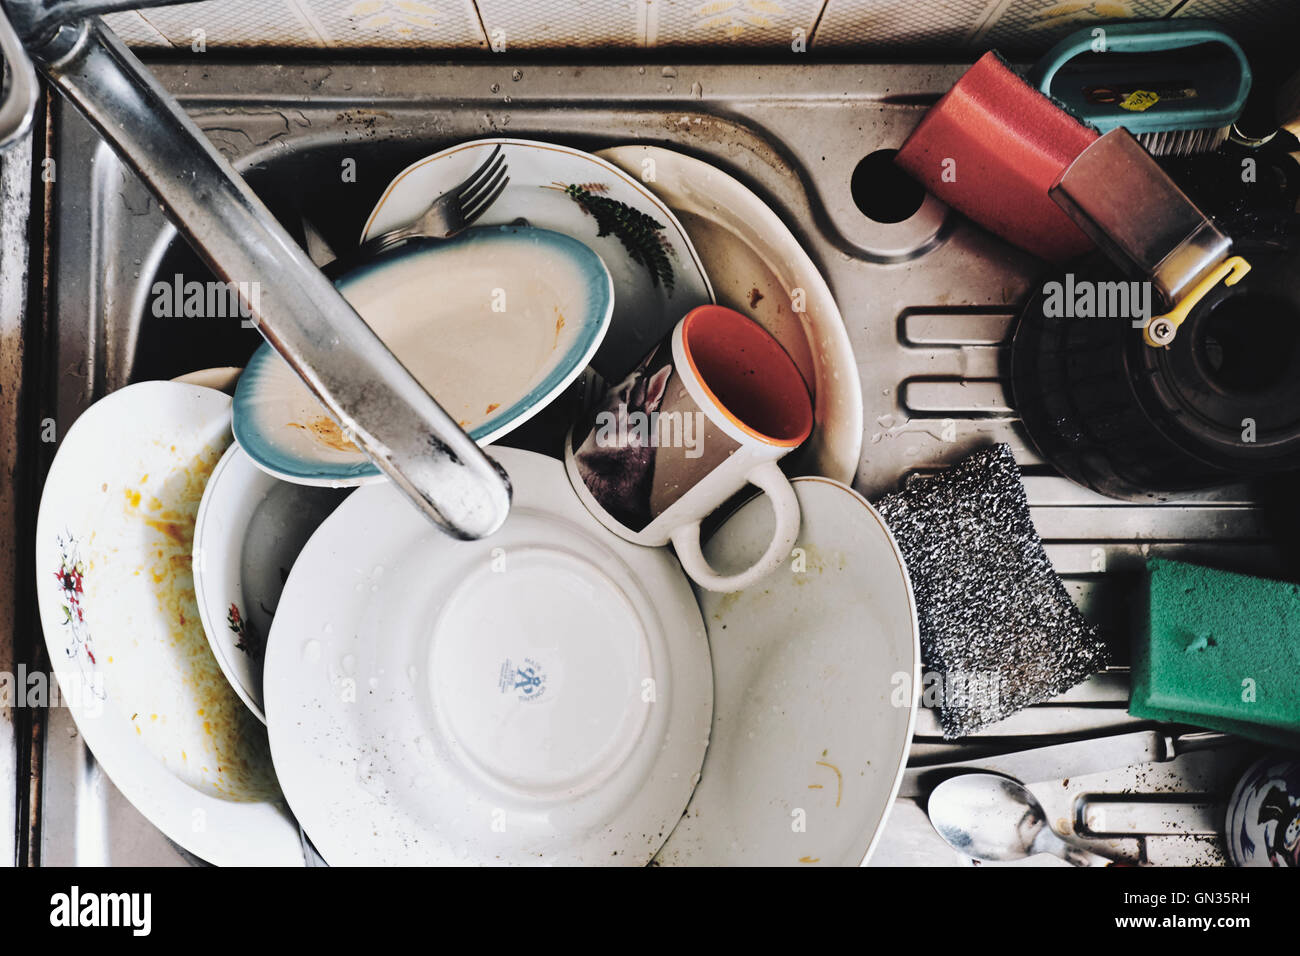 Dirty dishes, kitchen, messy, housework - Stock Image